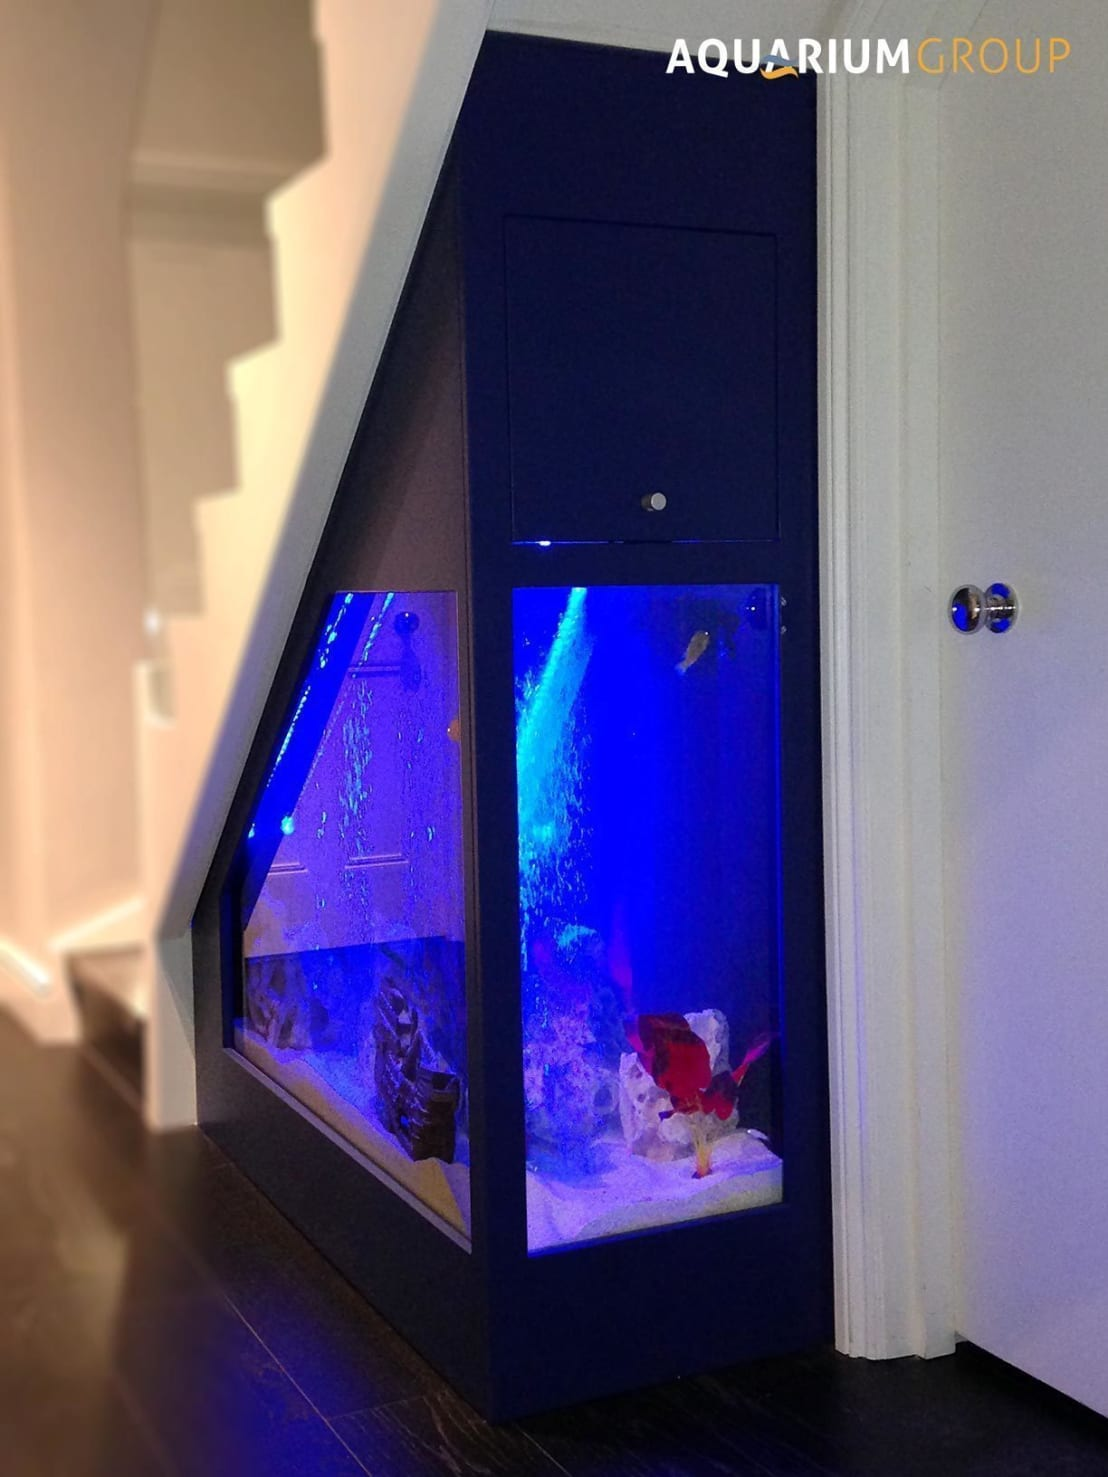 Luxury Home Aquariums By AquariumGroup